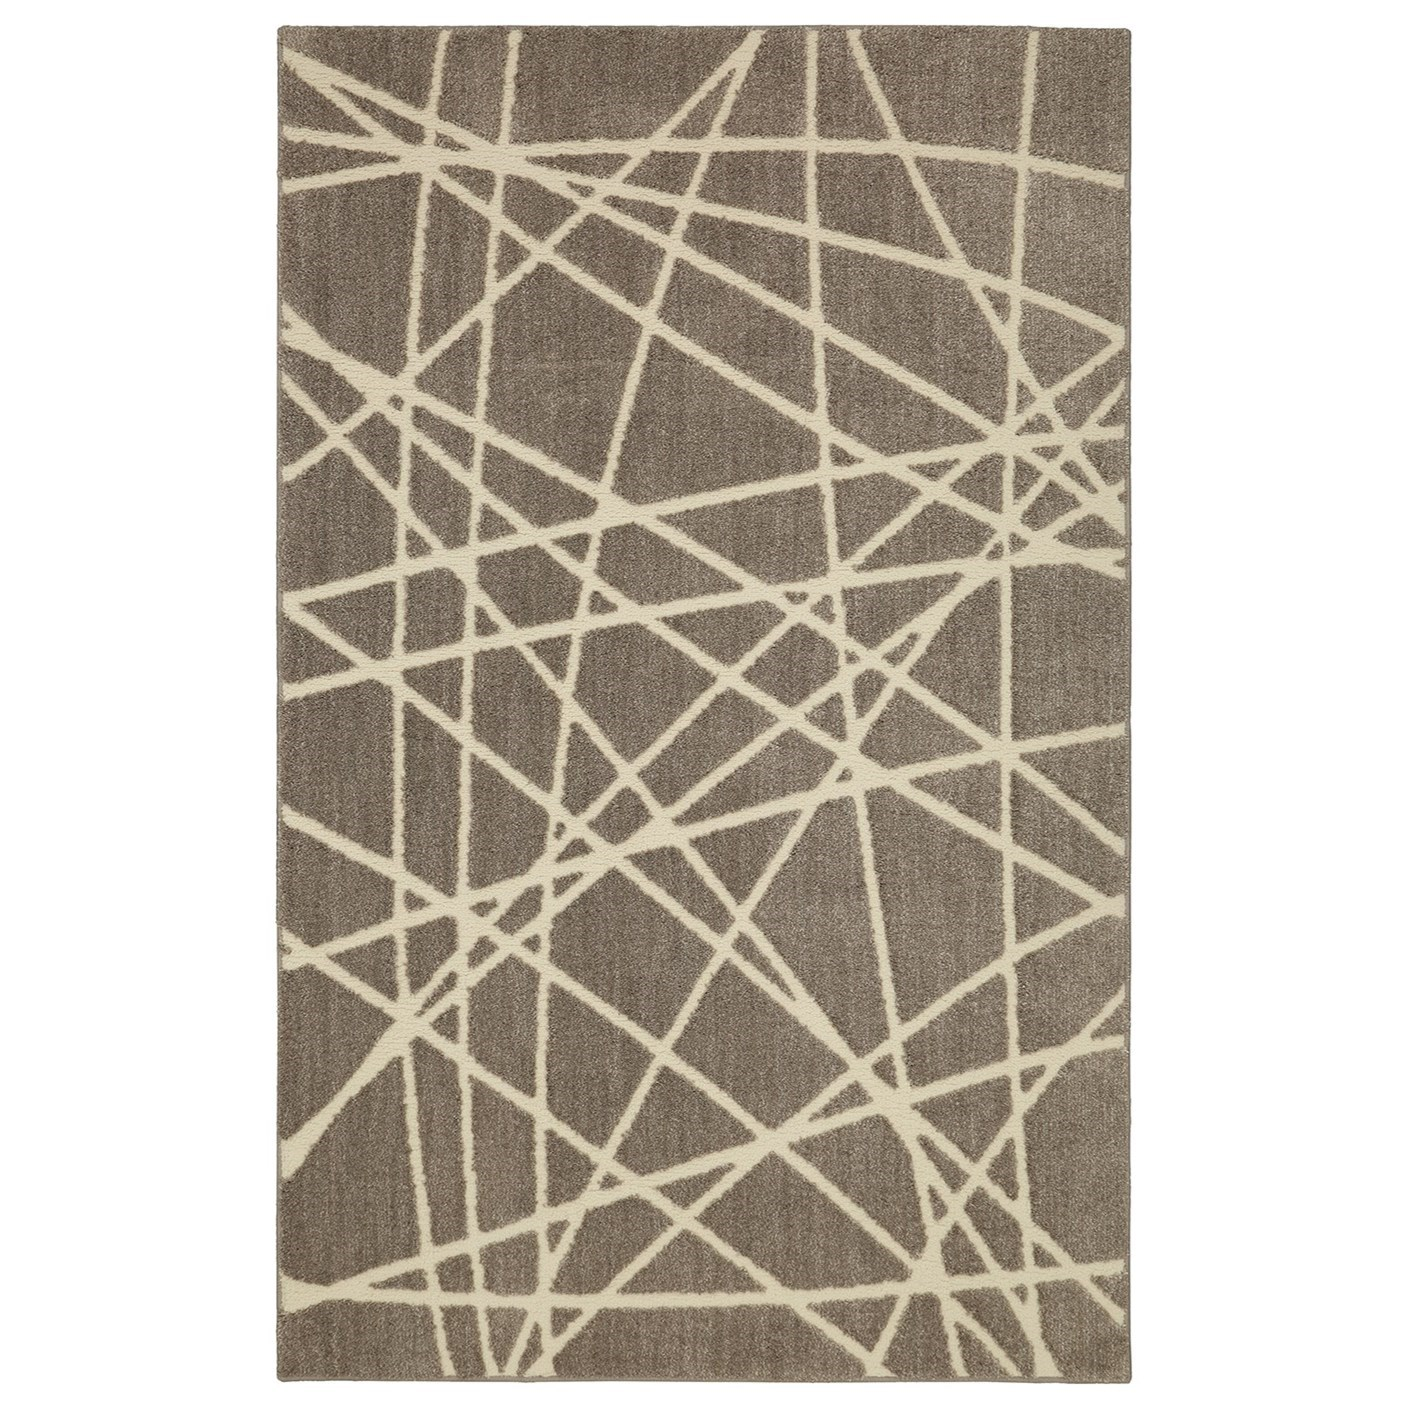 Nomad 5'x8' Artesia Gray Area Rug by American Rug Craftsmen at Alison Craig Home Furnishings